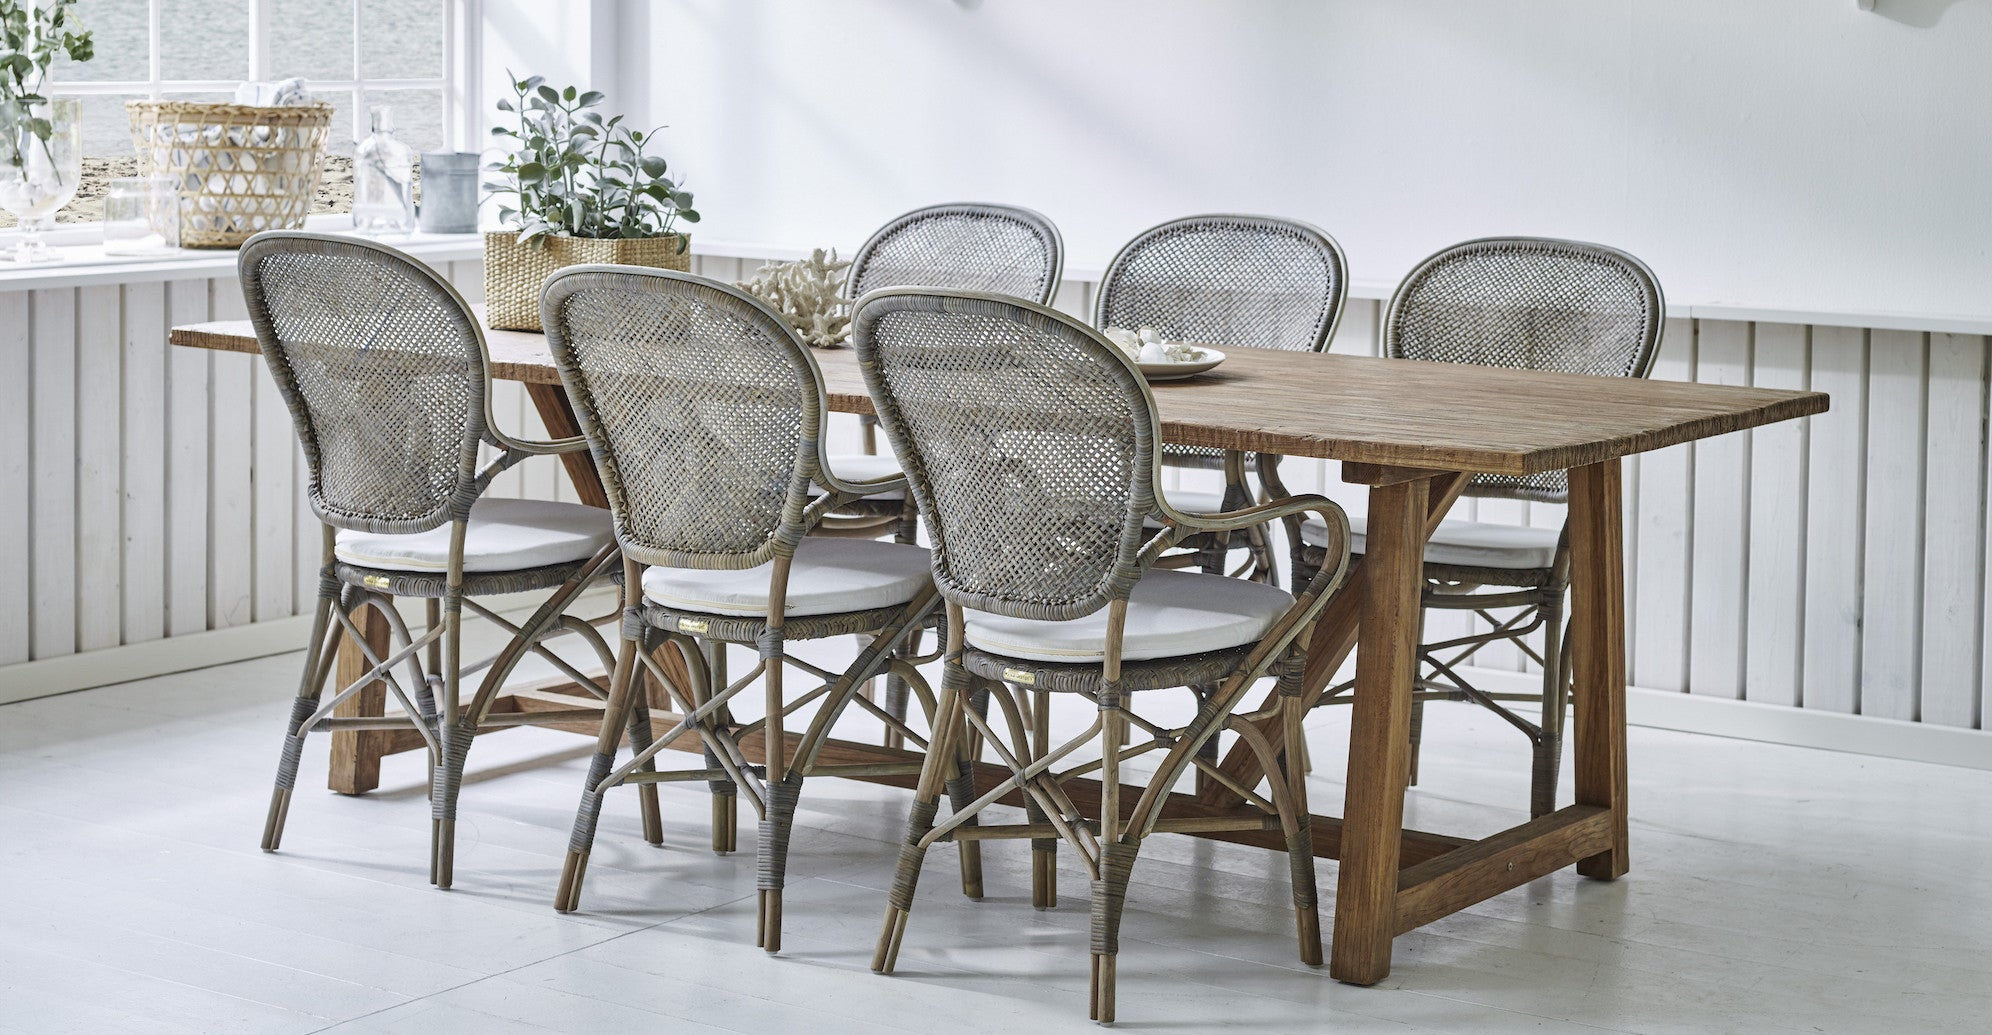 Furniture Design Usa sika design usa i handmade wicker rattan & cafe furniture